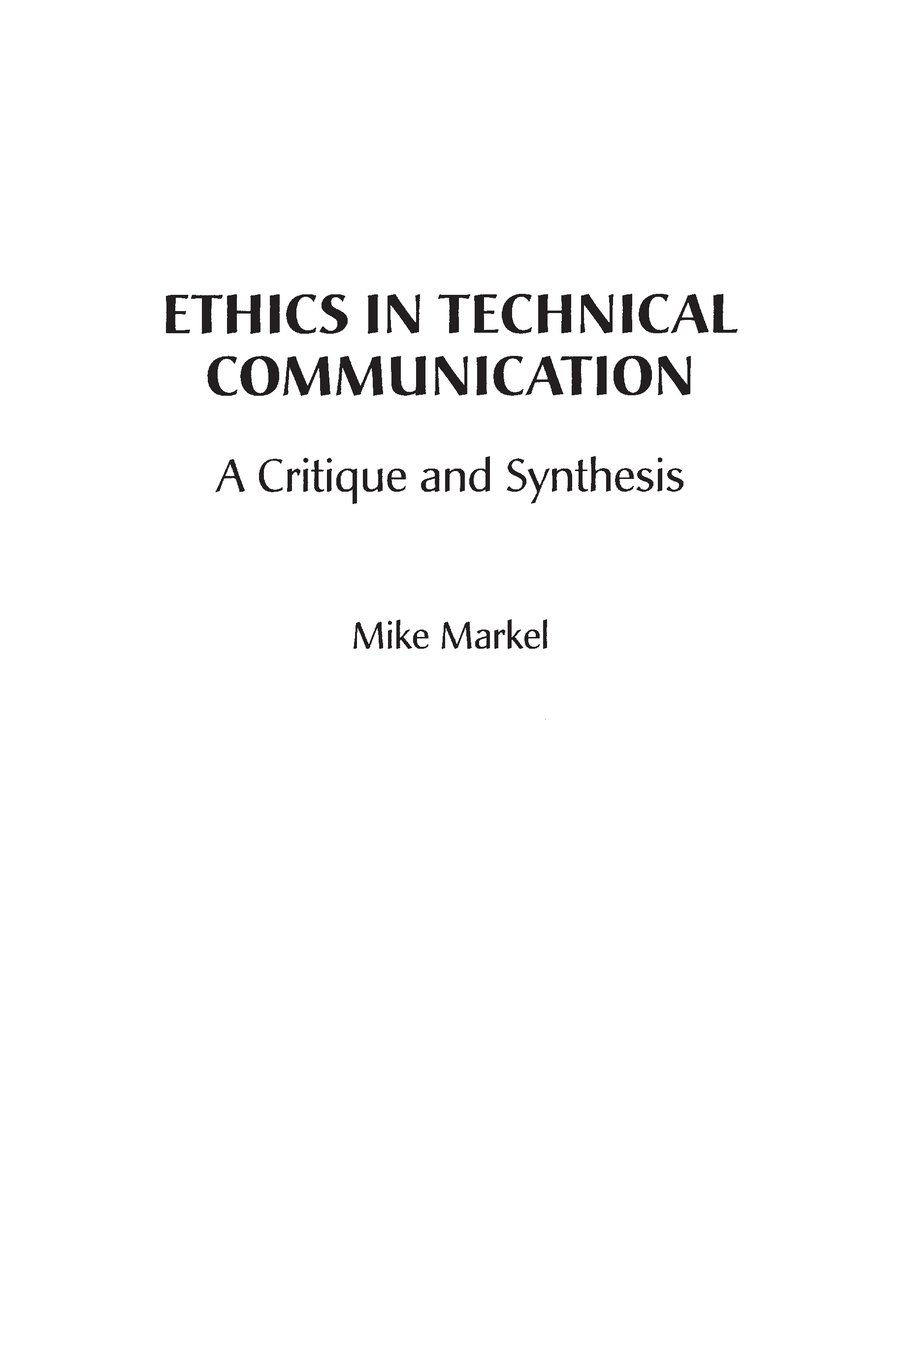 Ethics in Technical Communication: A Critique and Synthesis (Attw Contemporary Studies in Technical Communication)